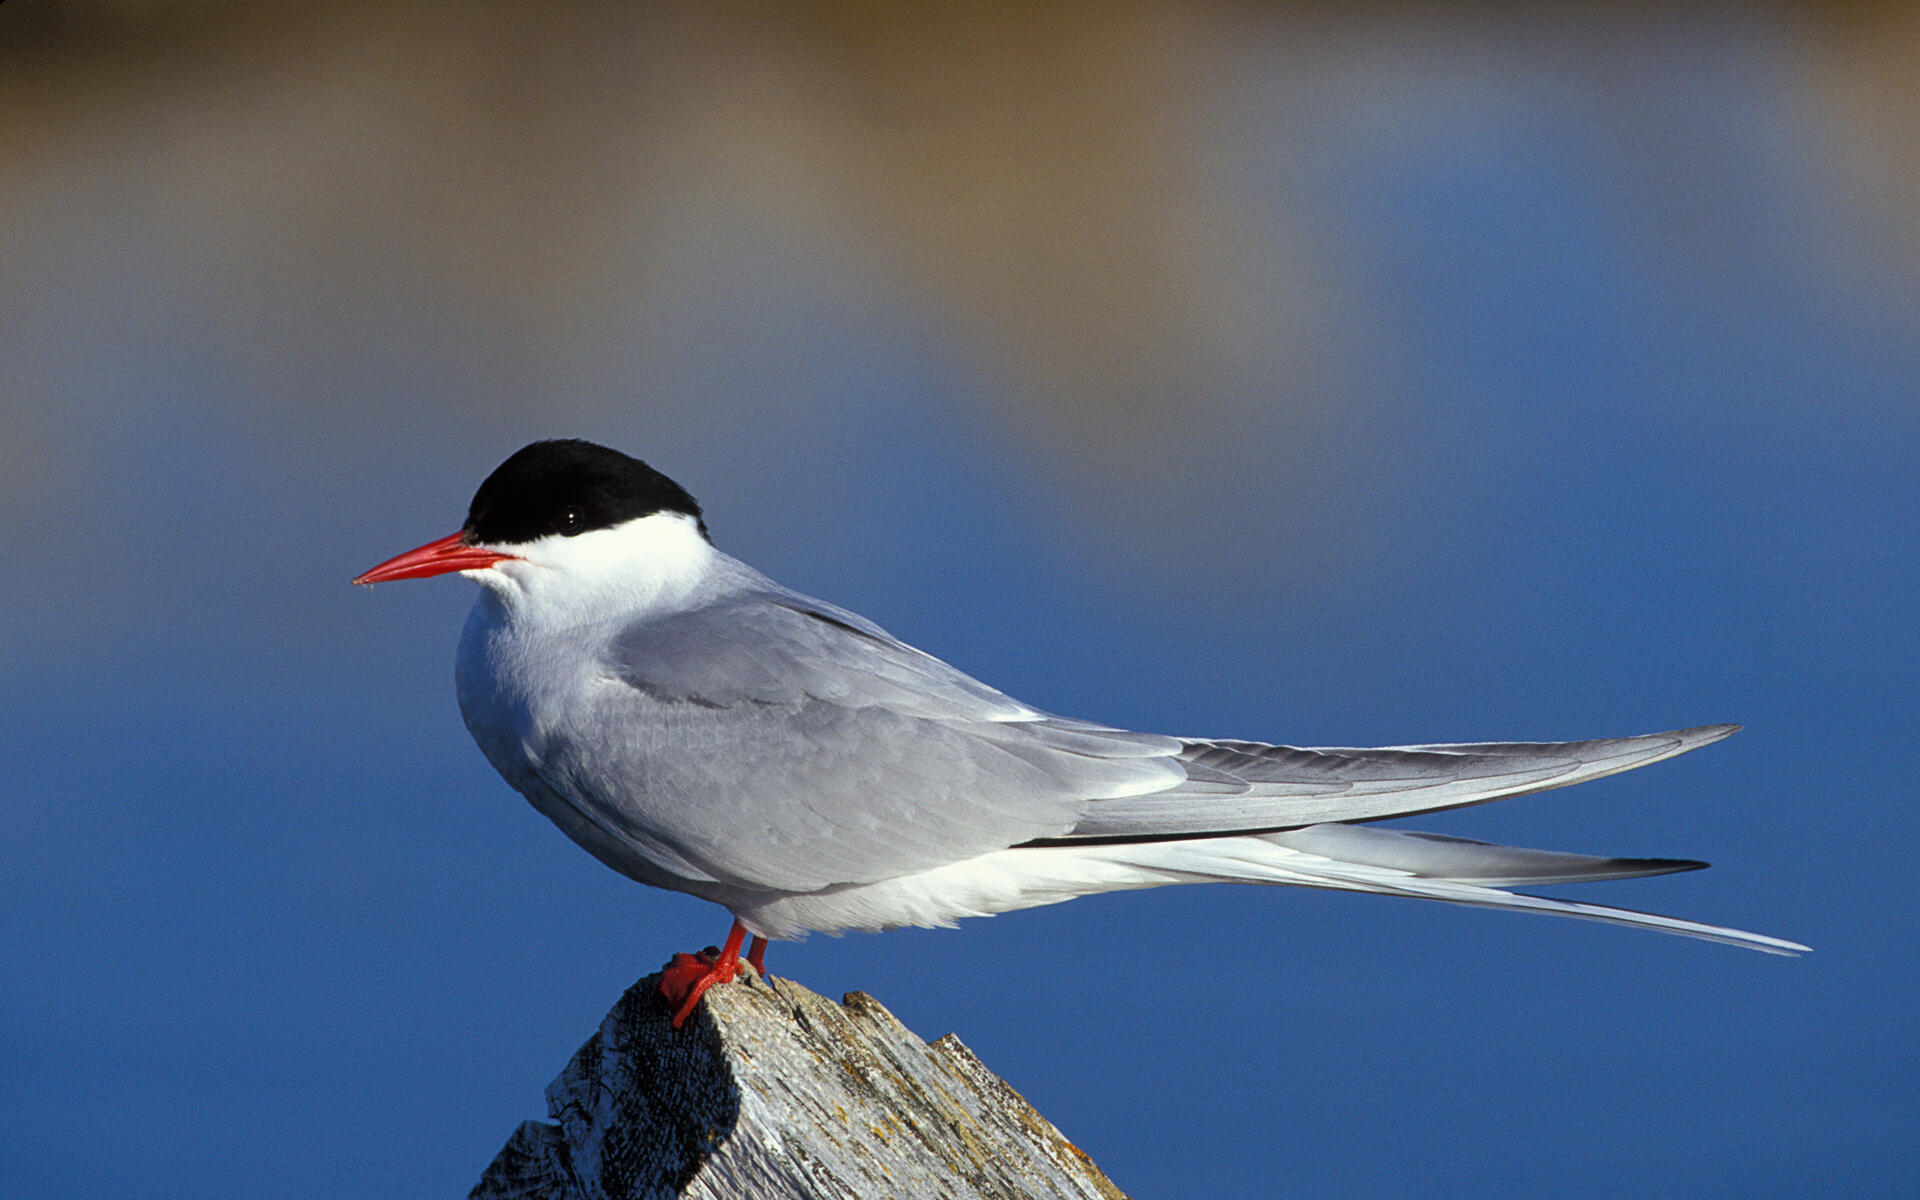 seabird and arctic terns An arctic tern soars over iceland these small birds have one of the longest annual migrations of any animal on earth every year, arctic terns migrate from the arctic circle to the antarctic circle—a round-trip journey of about 30,000 kilometers (18,641 miles.